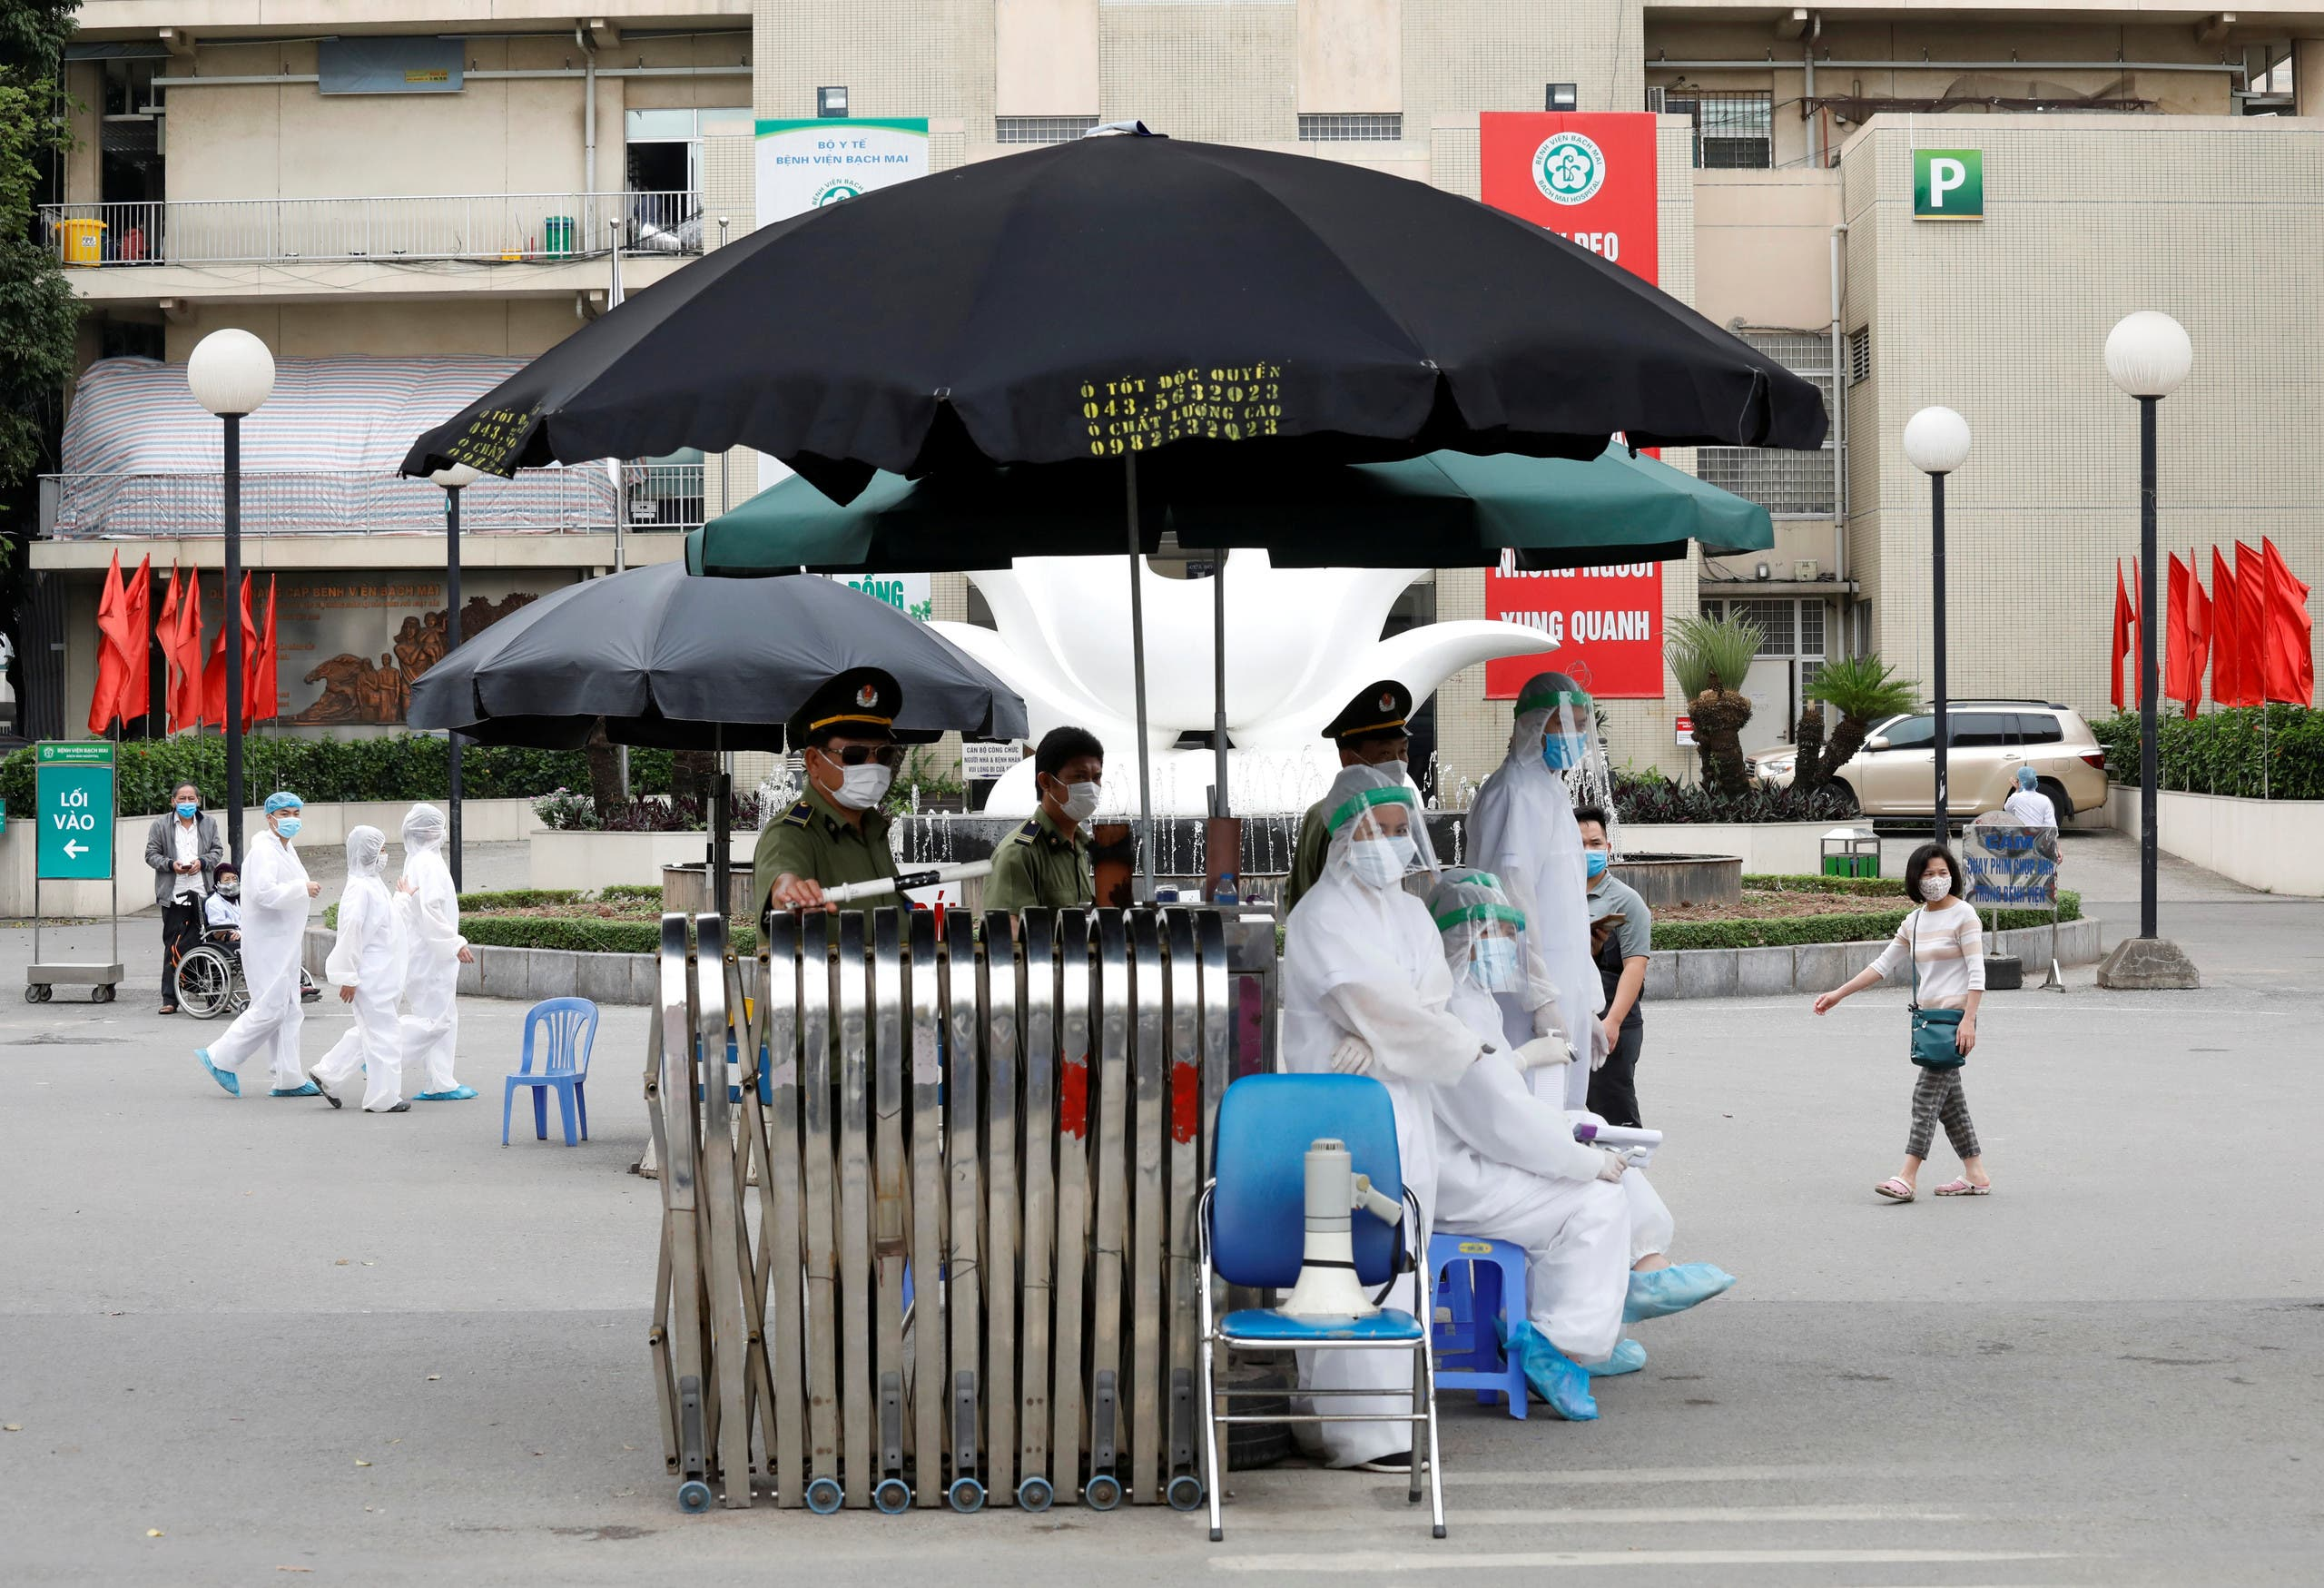 Health workers in hazmat suits are seen at the gate of Vietnam's largest hospital, Bach Mai, where coronavirus cases have been detected in Hanoi, Vietnam March. (File photo: Reuters)